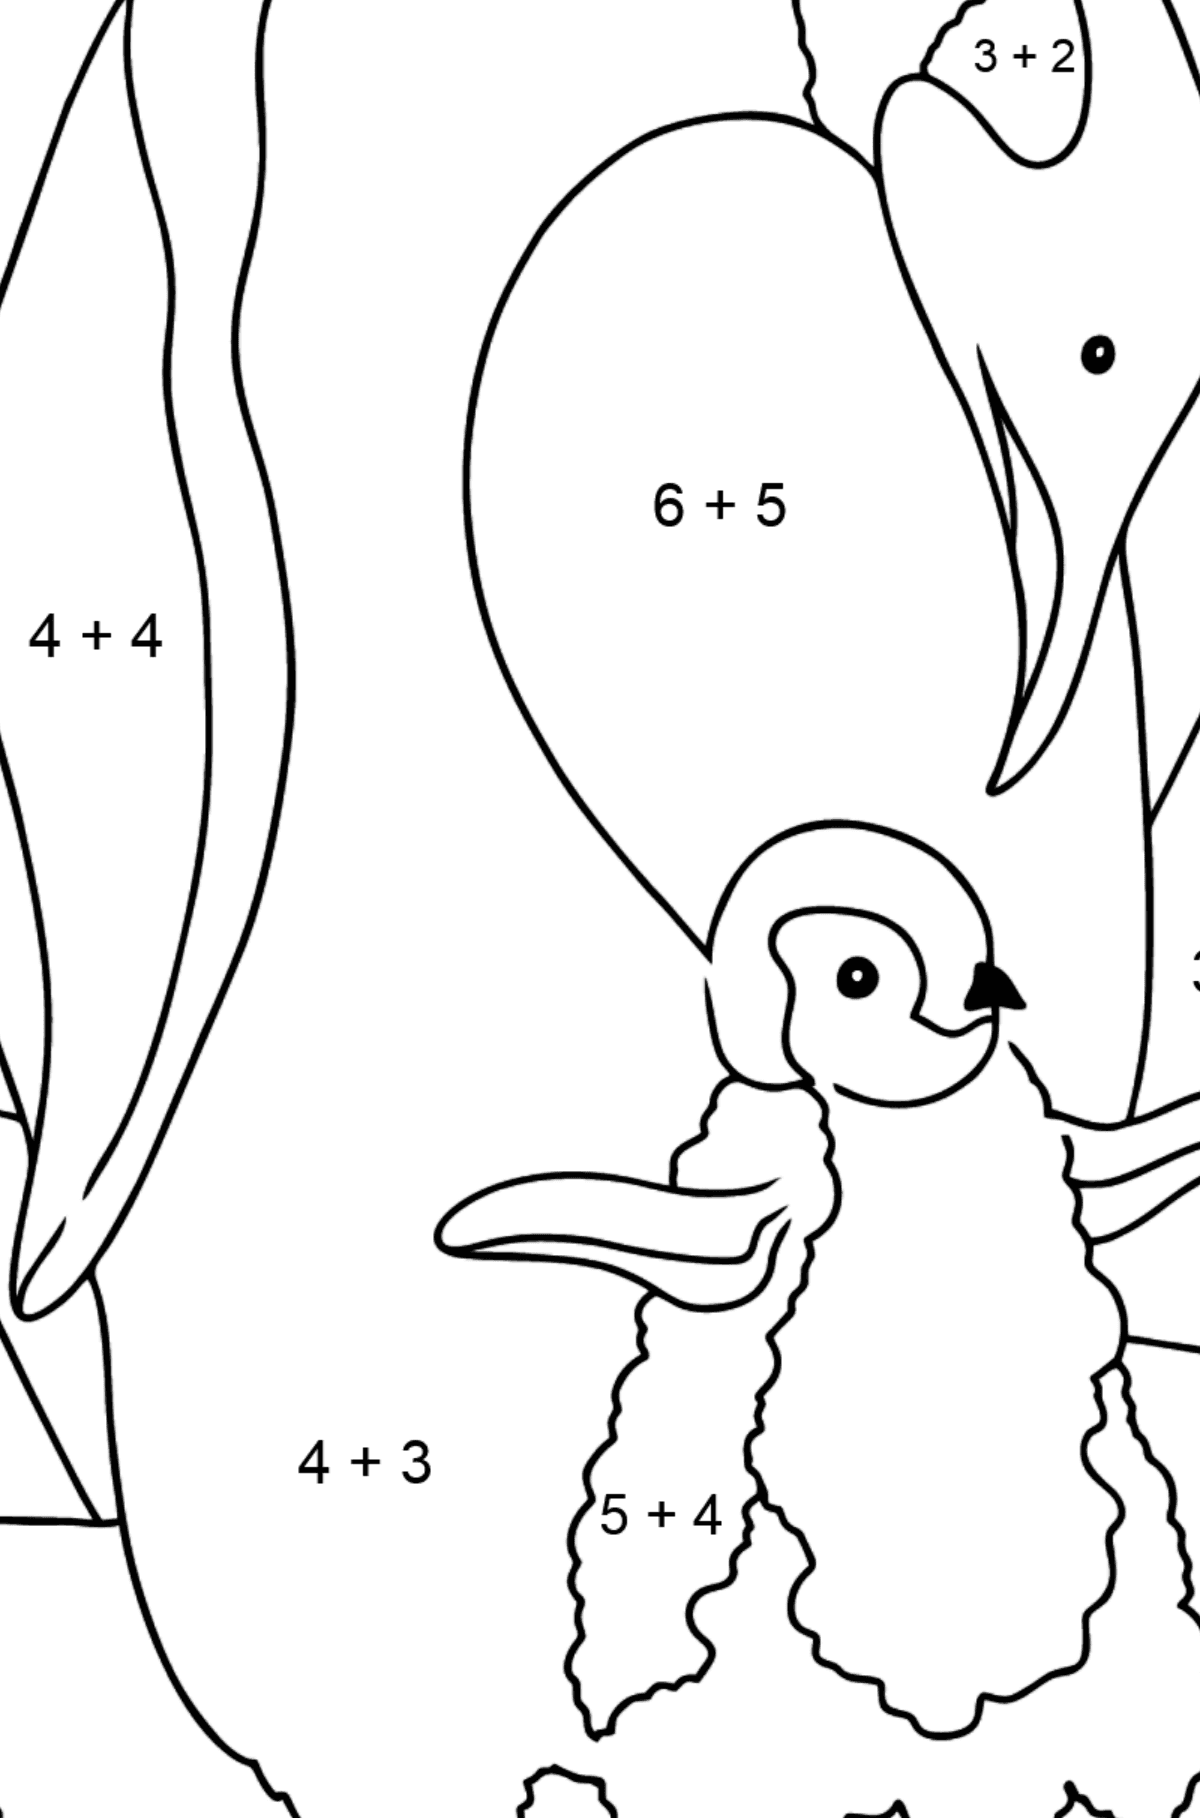 Coloring Page - A Caring Penguin - Math Coloring - Addition for Kids